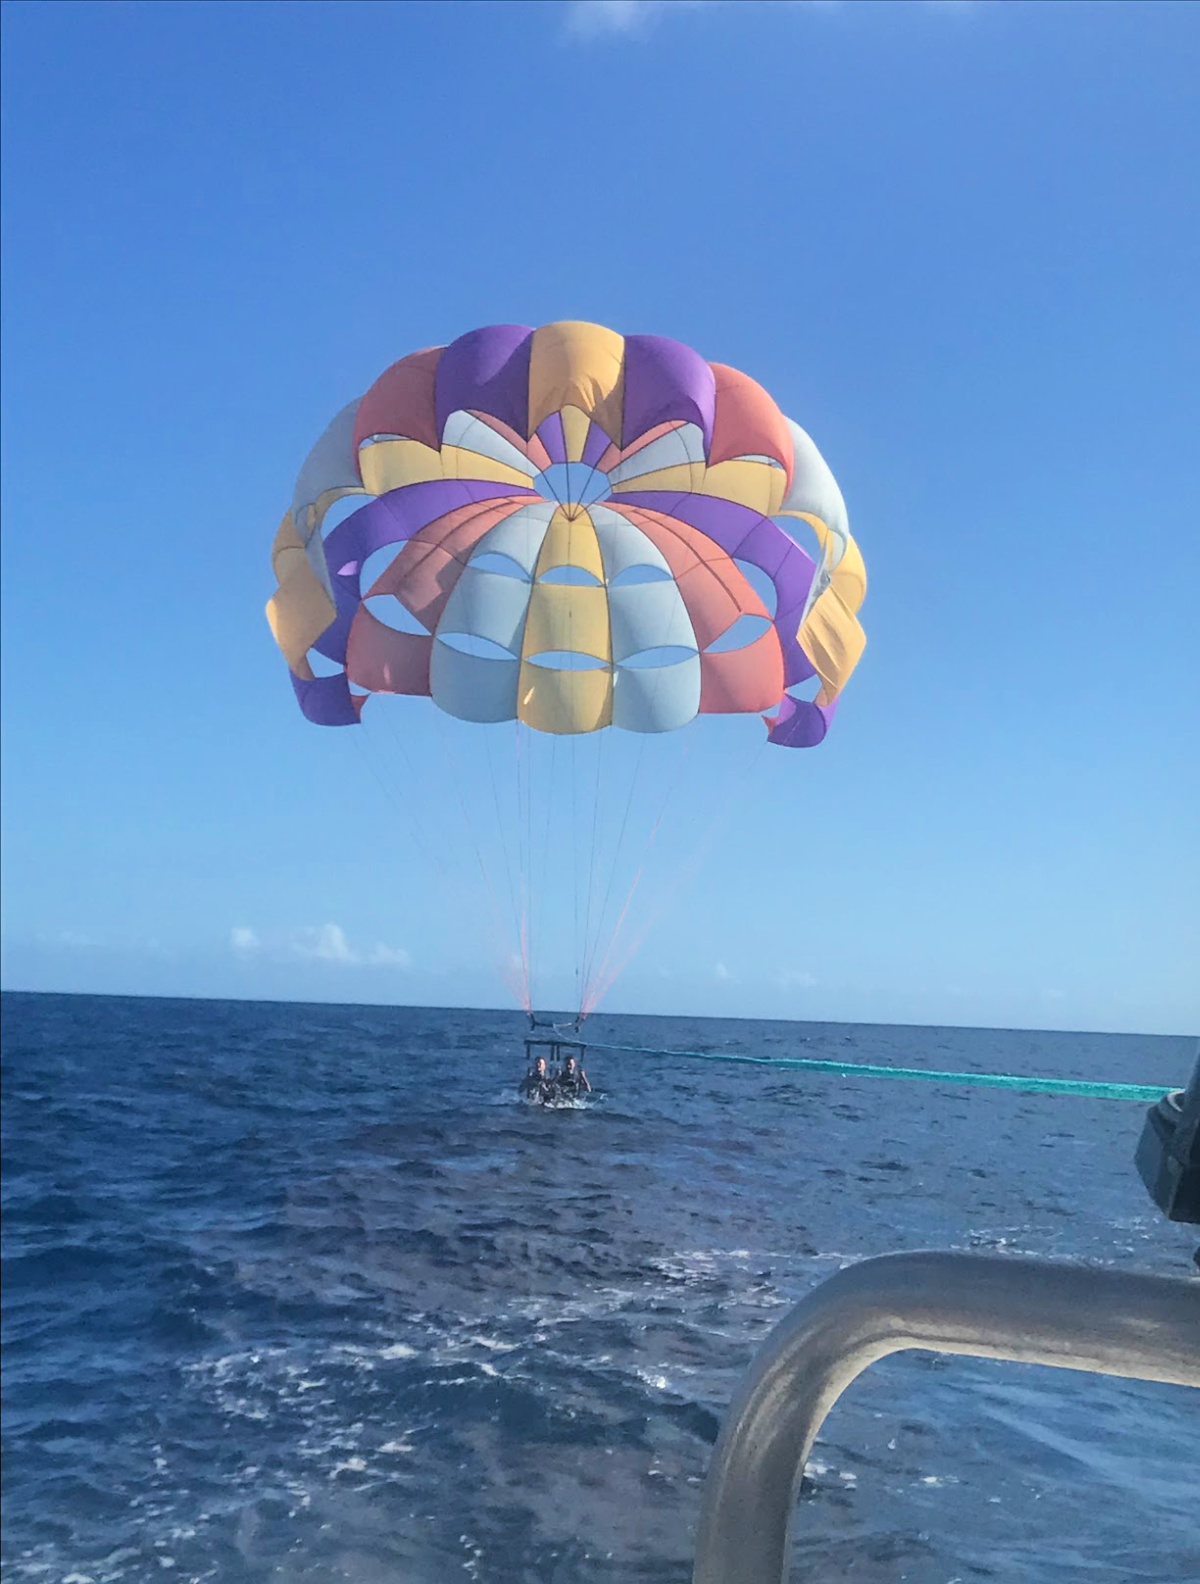 Fun with Parasailing